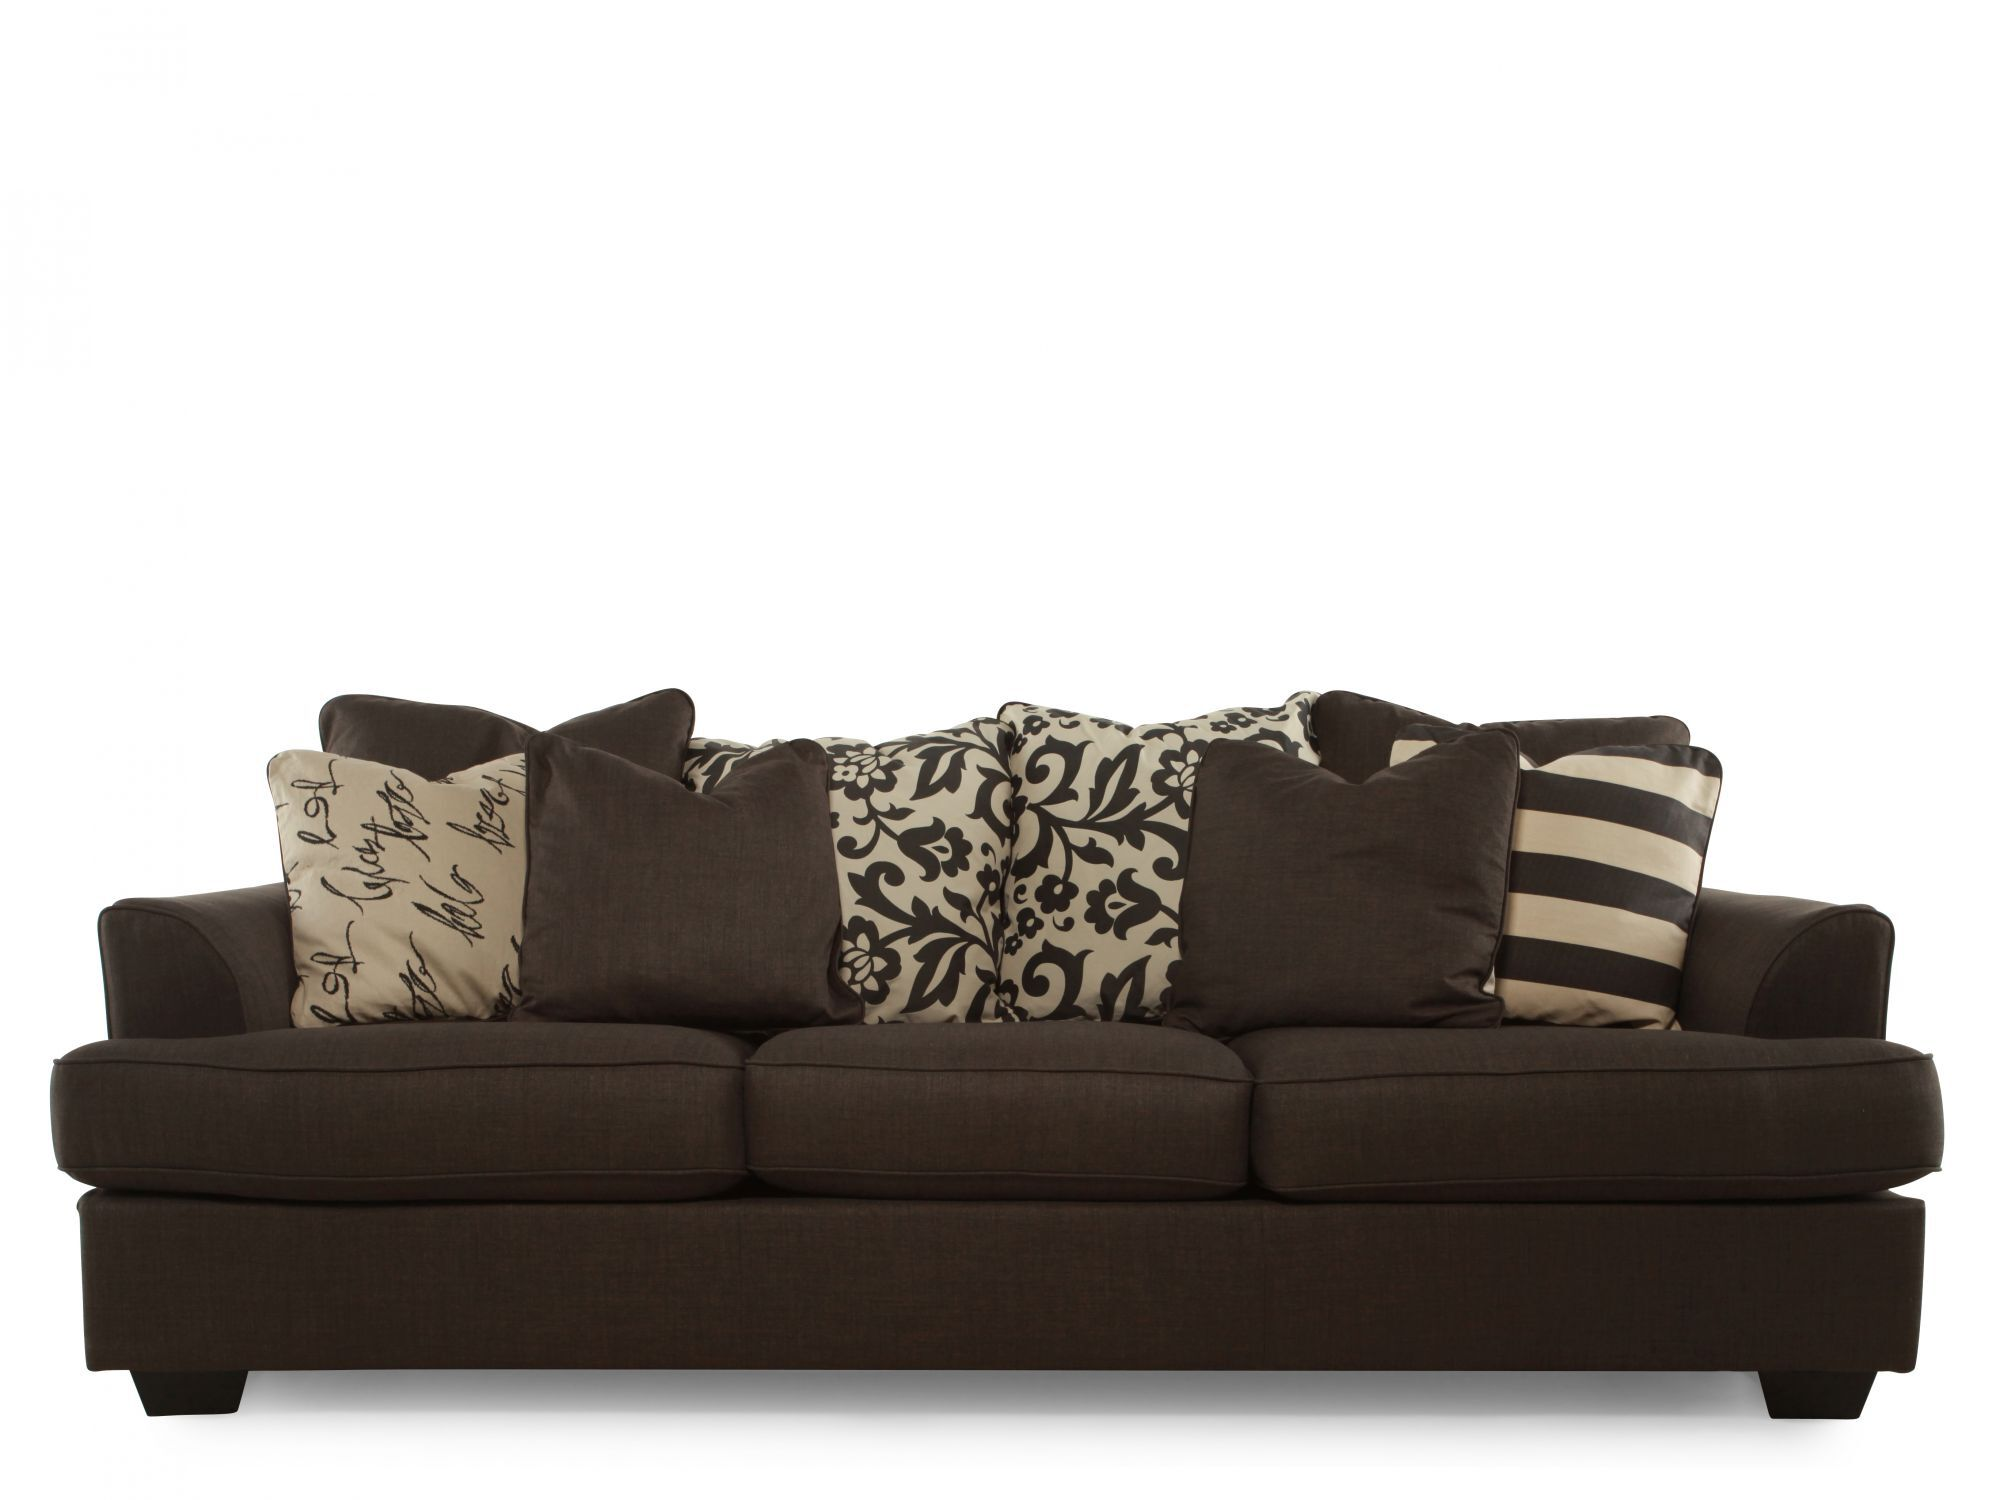 Images Low Profile Casual 96u0026quot; Sofa In Charcoal Low Profile Casual  96u0026quot; Sofa In Charcoal